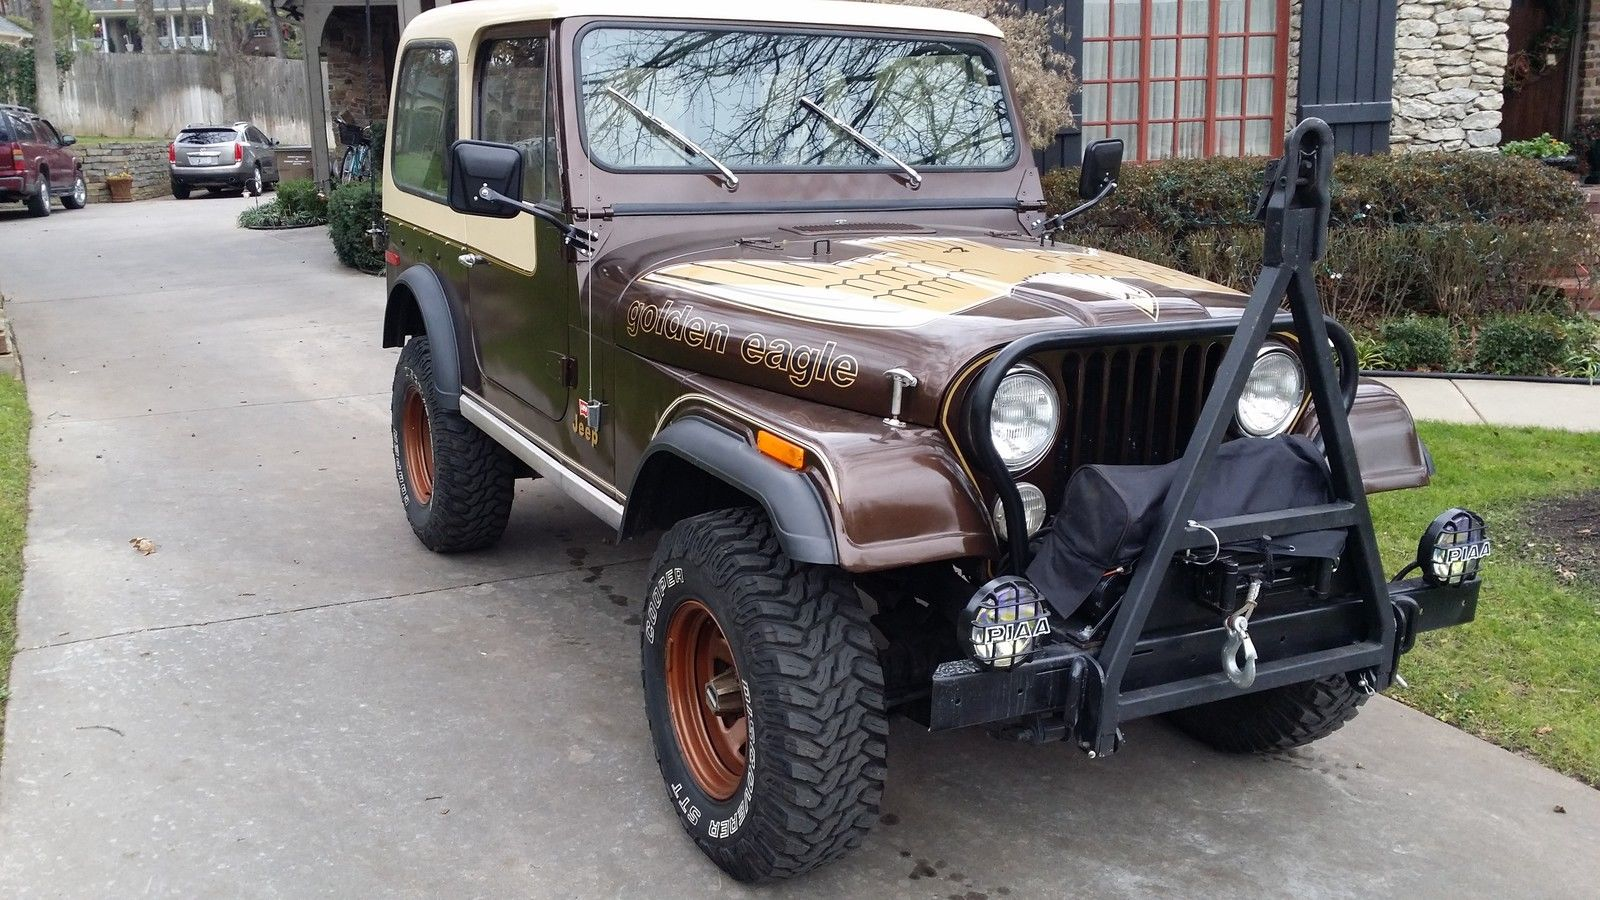 Classic Jeeps For Sale >> 1979 Original Jeep CJ7 Golden Eagle 304 V8 4 Speed Levi Package Winch Tow Bar - Classic Jeep CJ ...